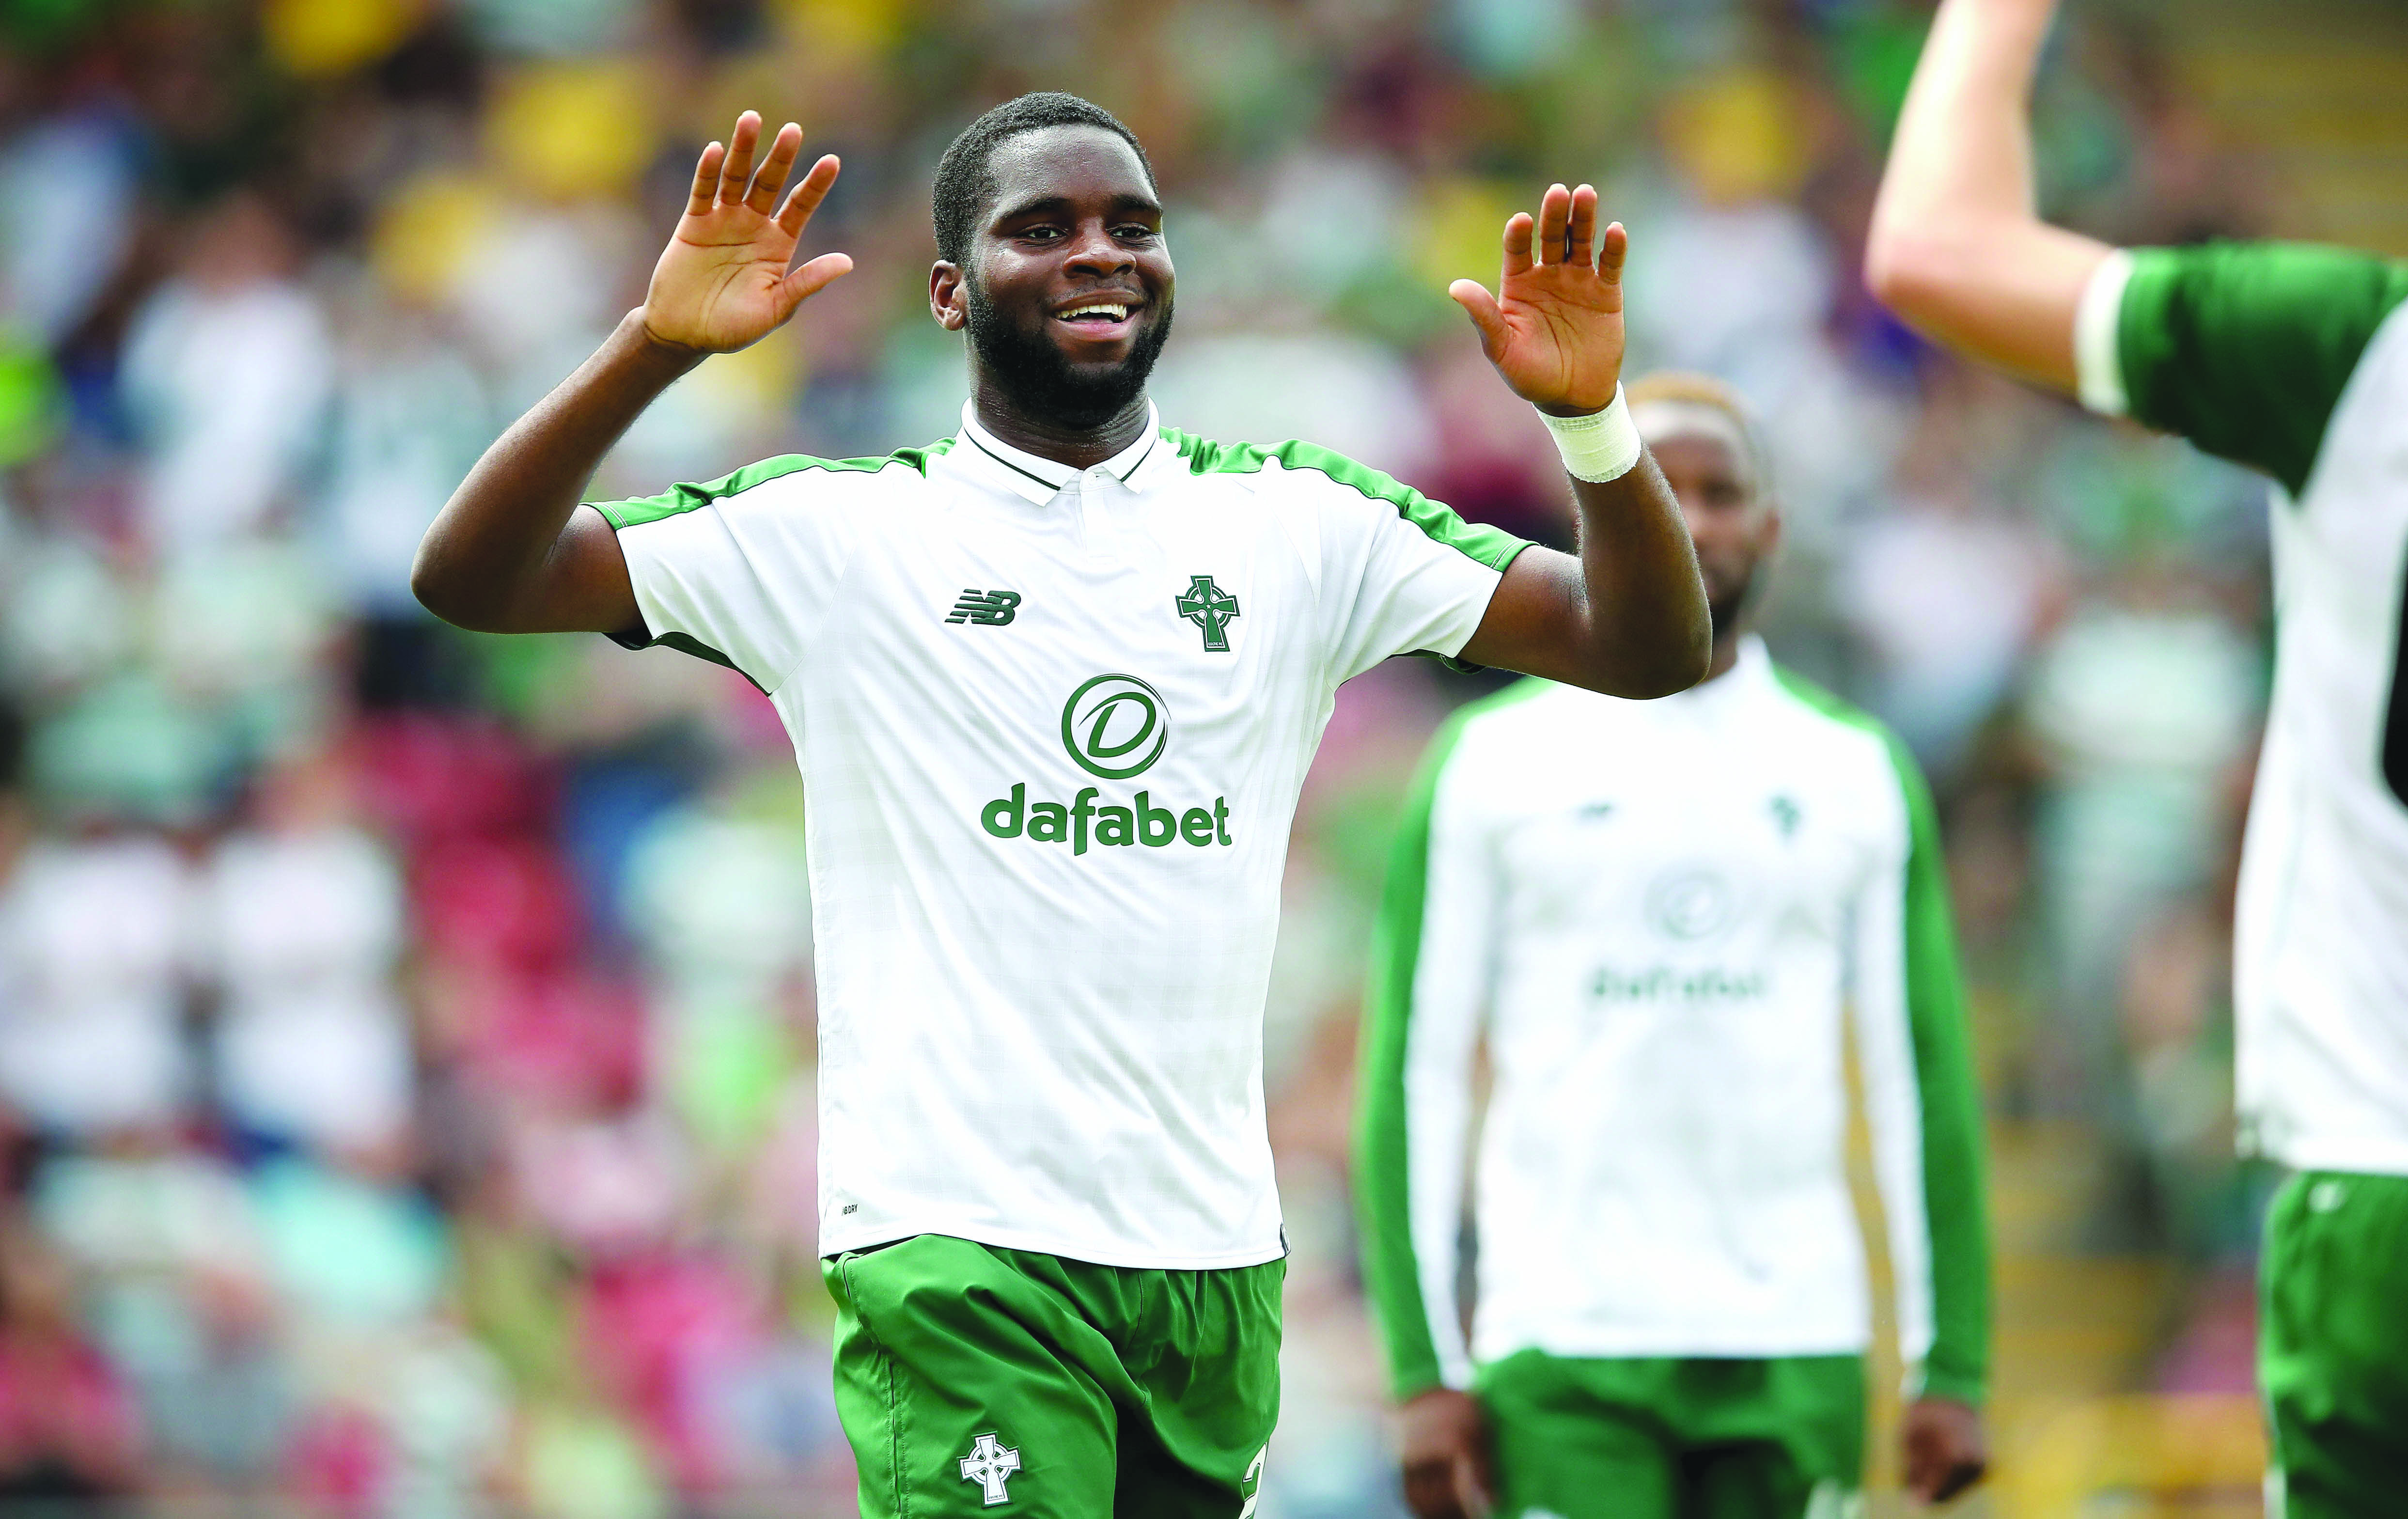 Odsonne Edouard is tipped to find the net first at Ibrox on Saturday